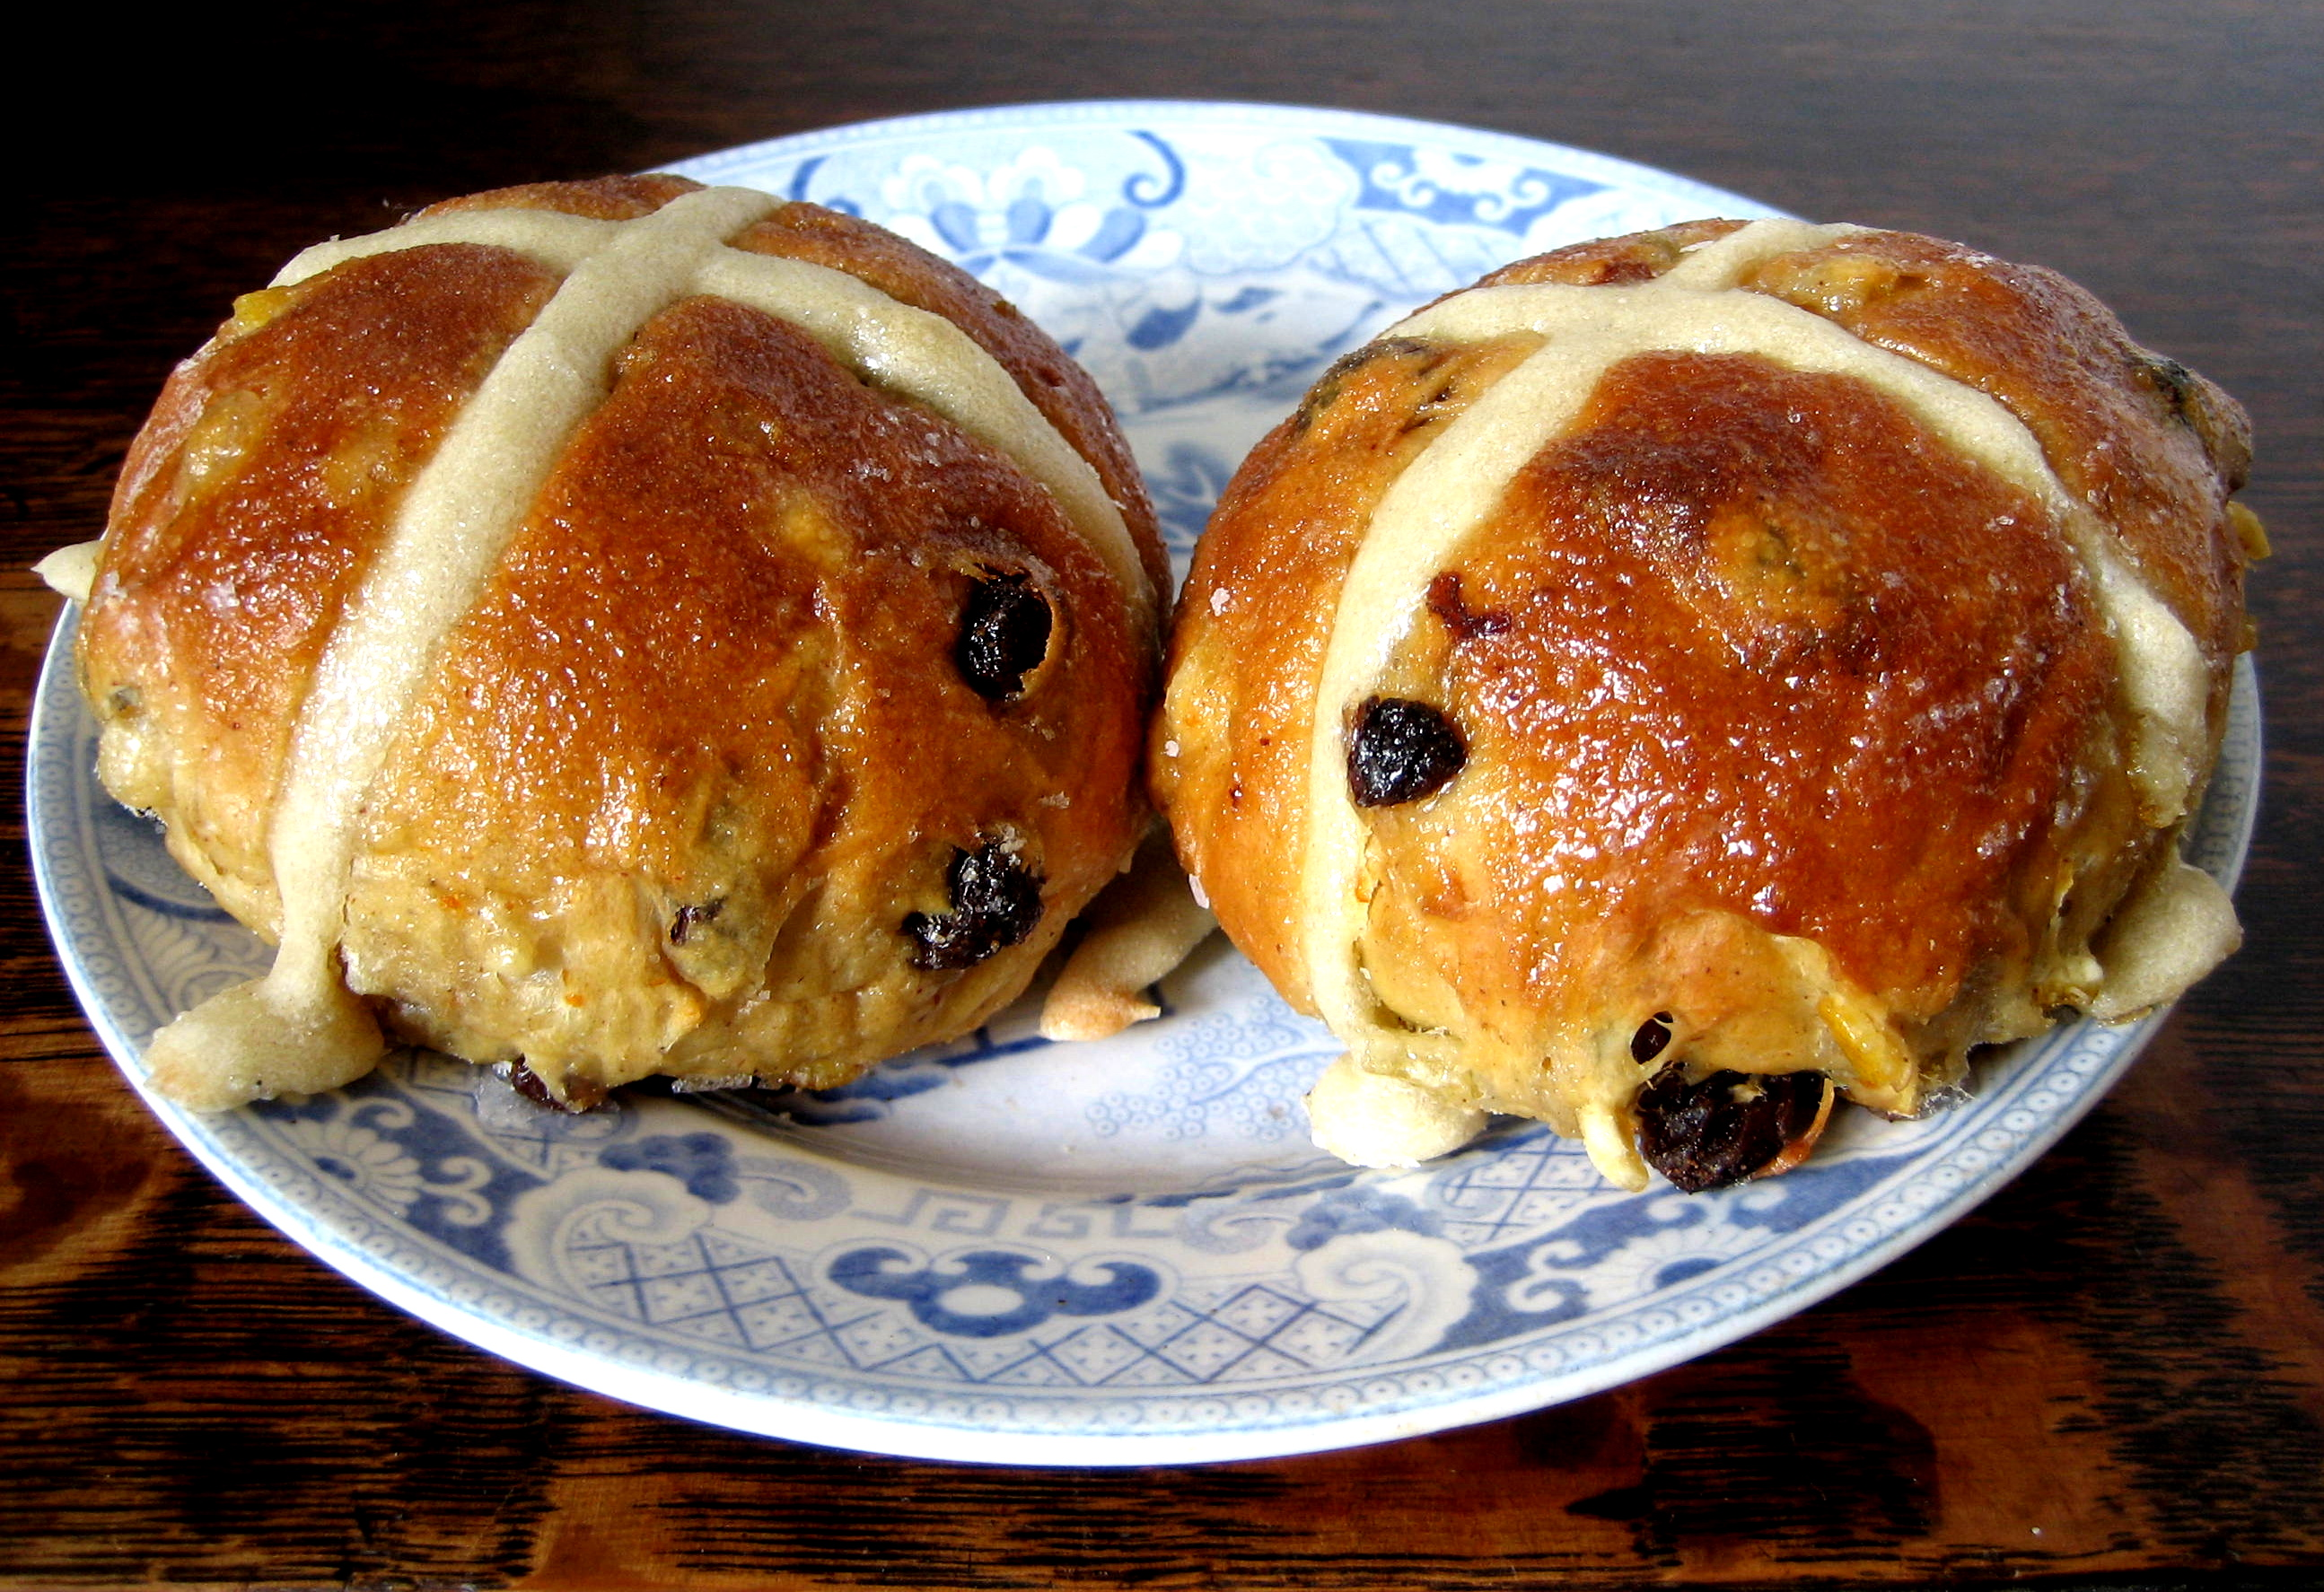 ... hot cross buns homemade hot cross buns jpg cheat s hot cross buns